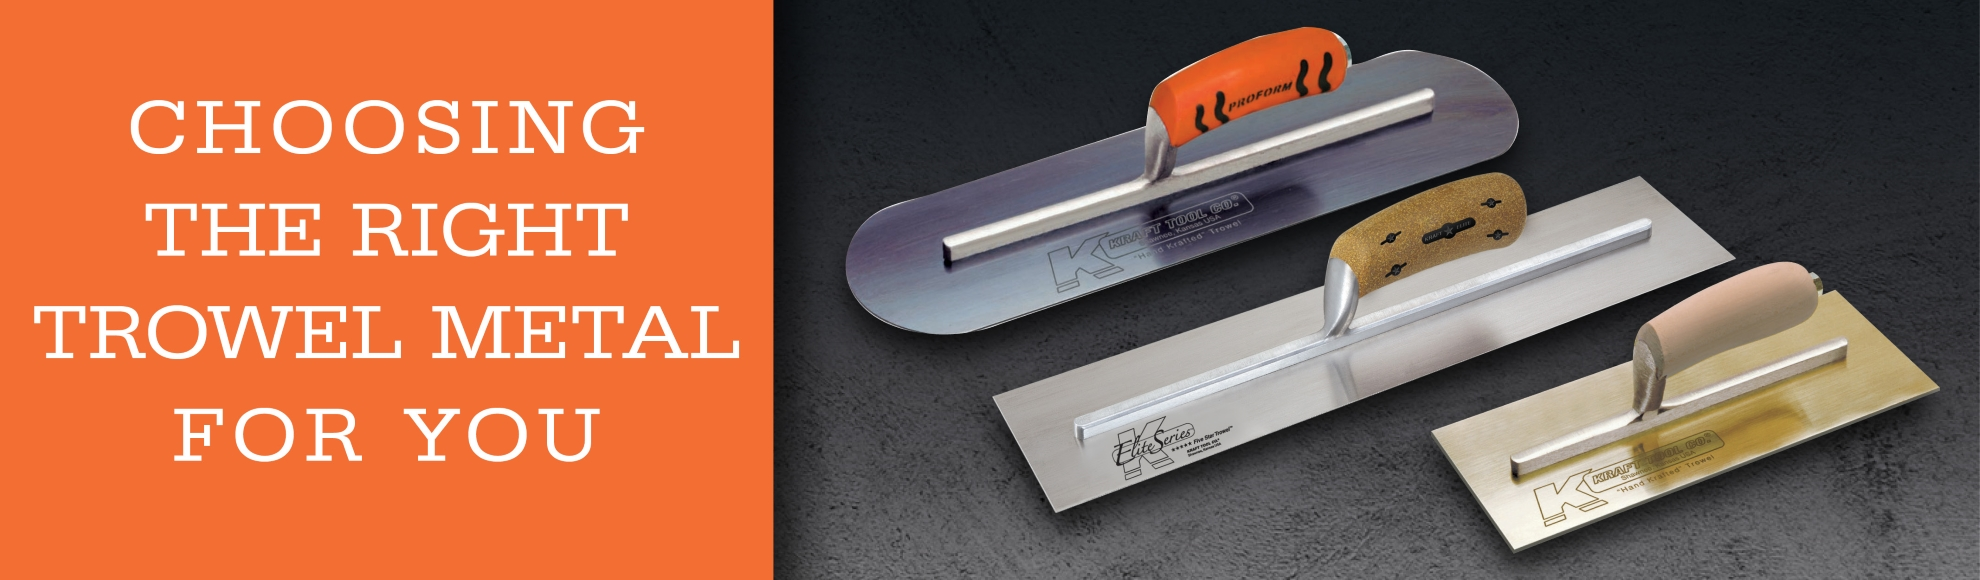 Choosing the Right Trowel Metal for You